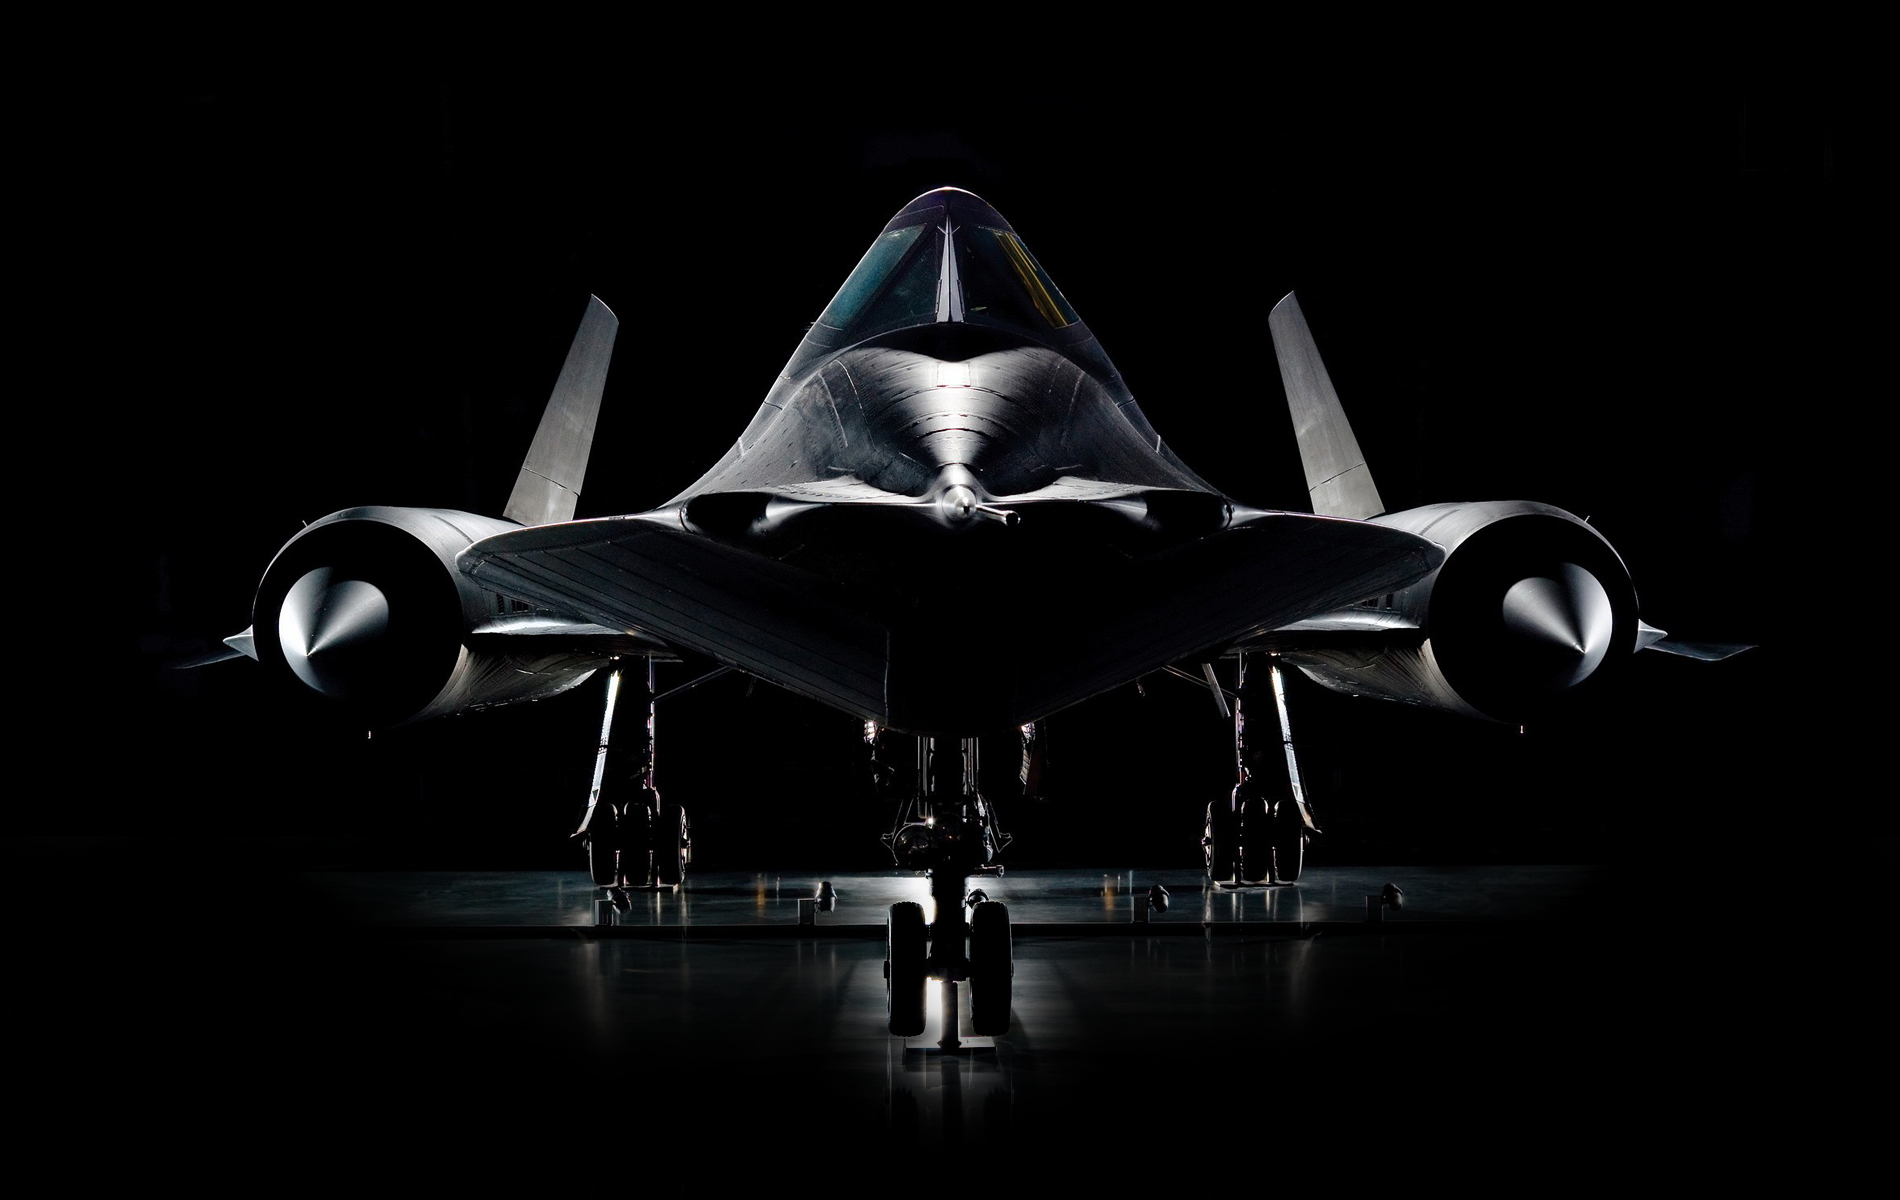 Hush kit top ten 10 most evil looking aircraft hush kit - Sr 71 wallpaper ...